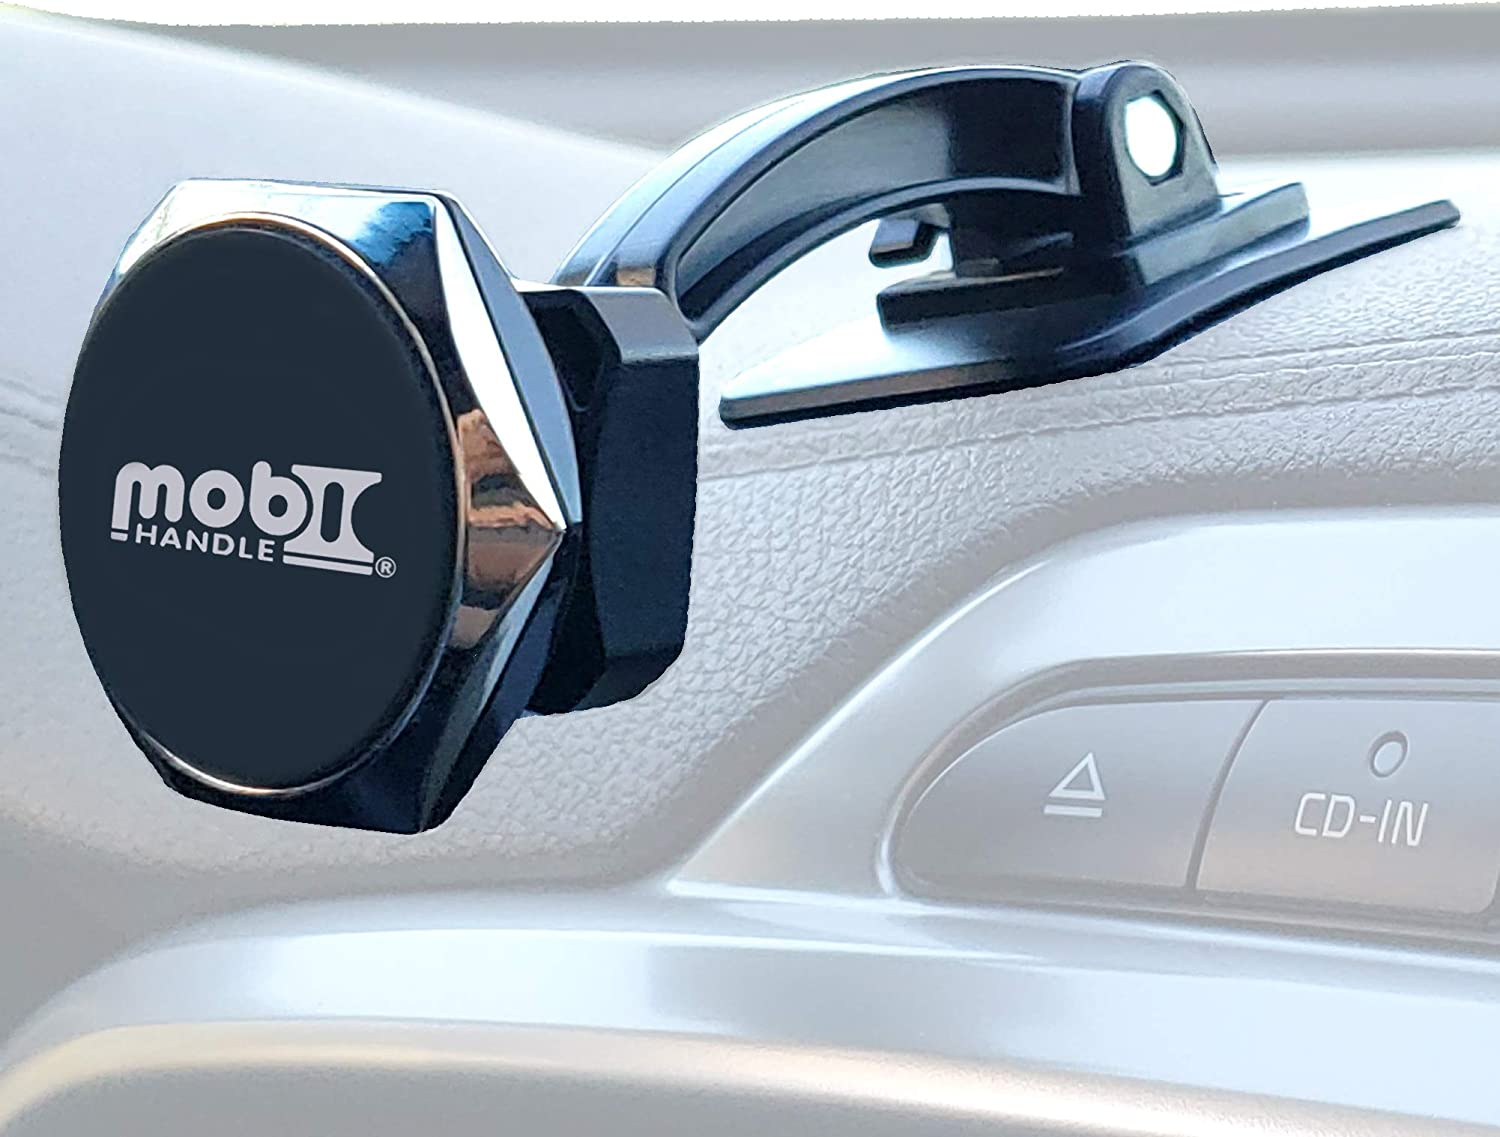 Magnetic Cell Phone Holder for Car - Universal Cradle Mount Stand for Dashboard Walls Furniture Computer -Any Angle, Powerful Magnets, Hot/Cold/Flat/Curved Surfaces -by MOBI HANDLE